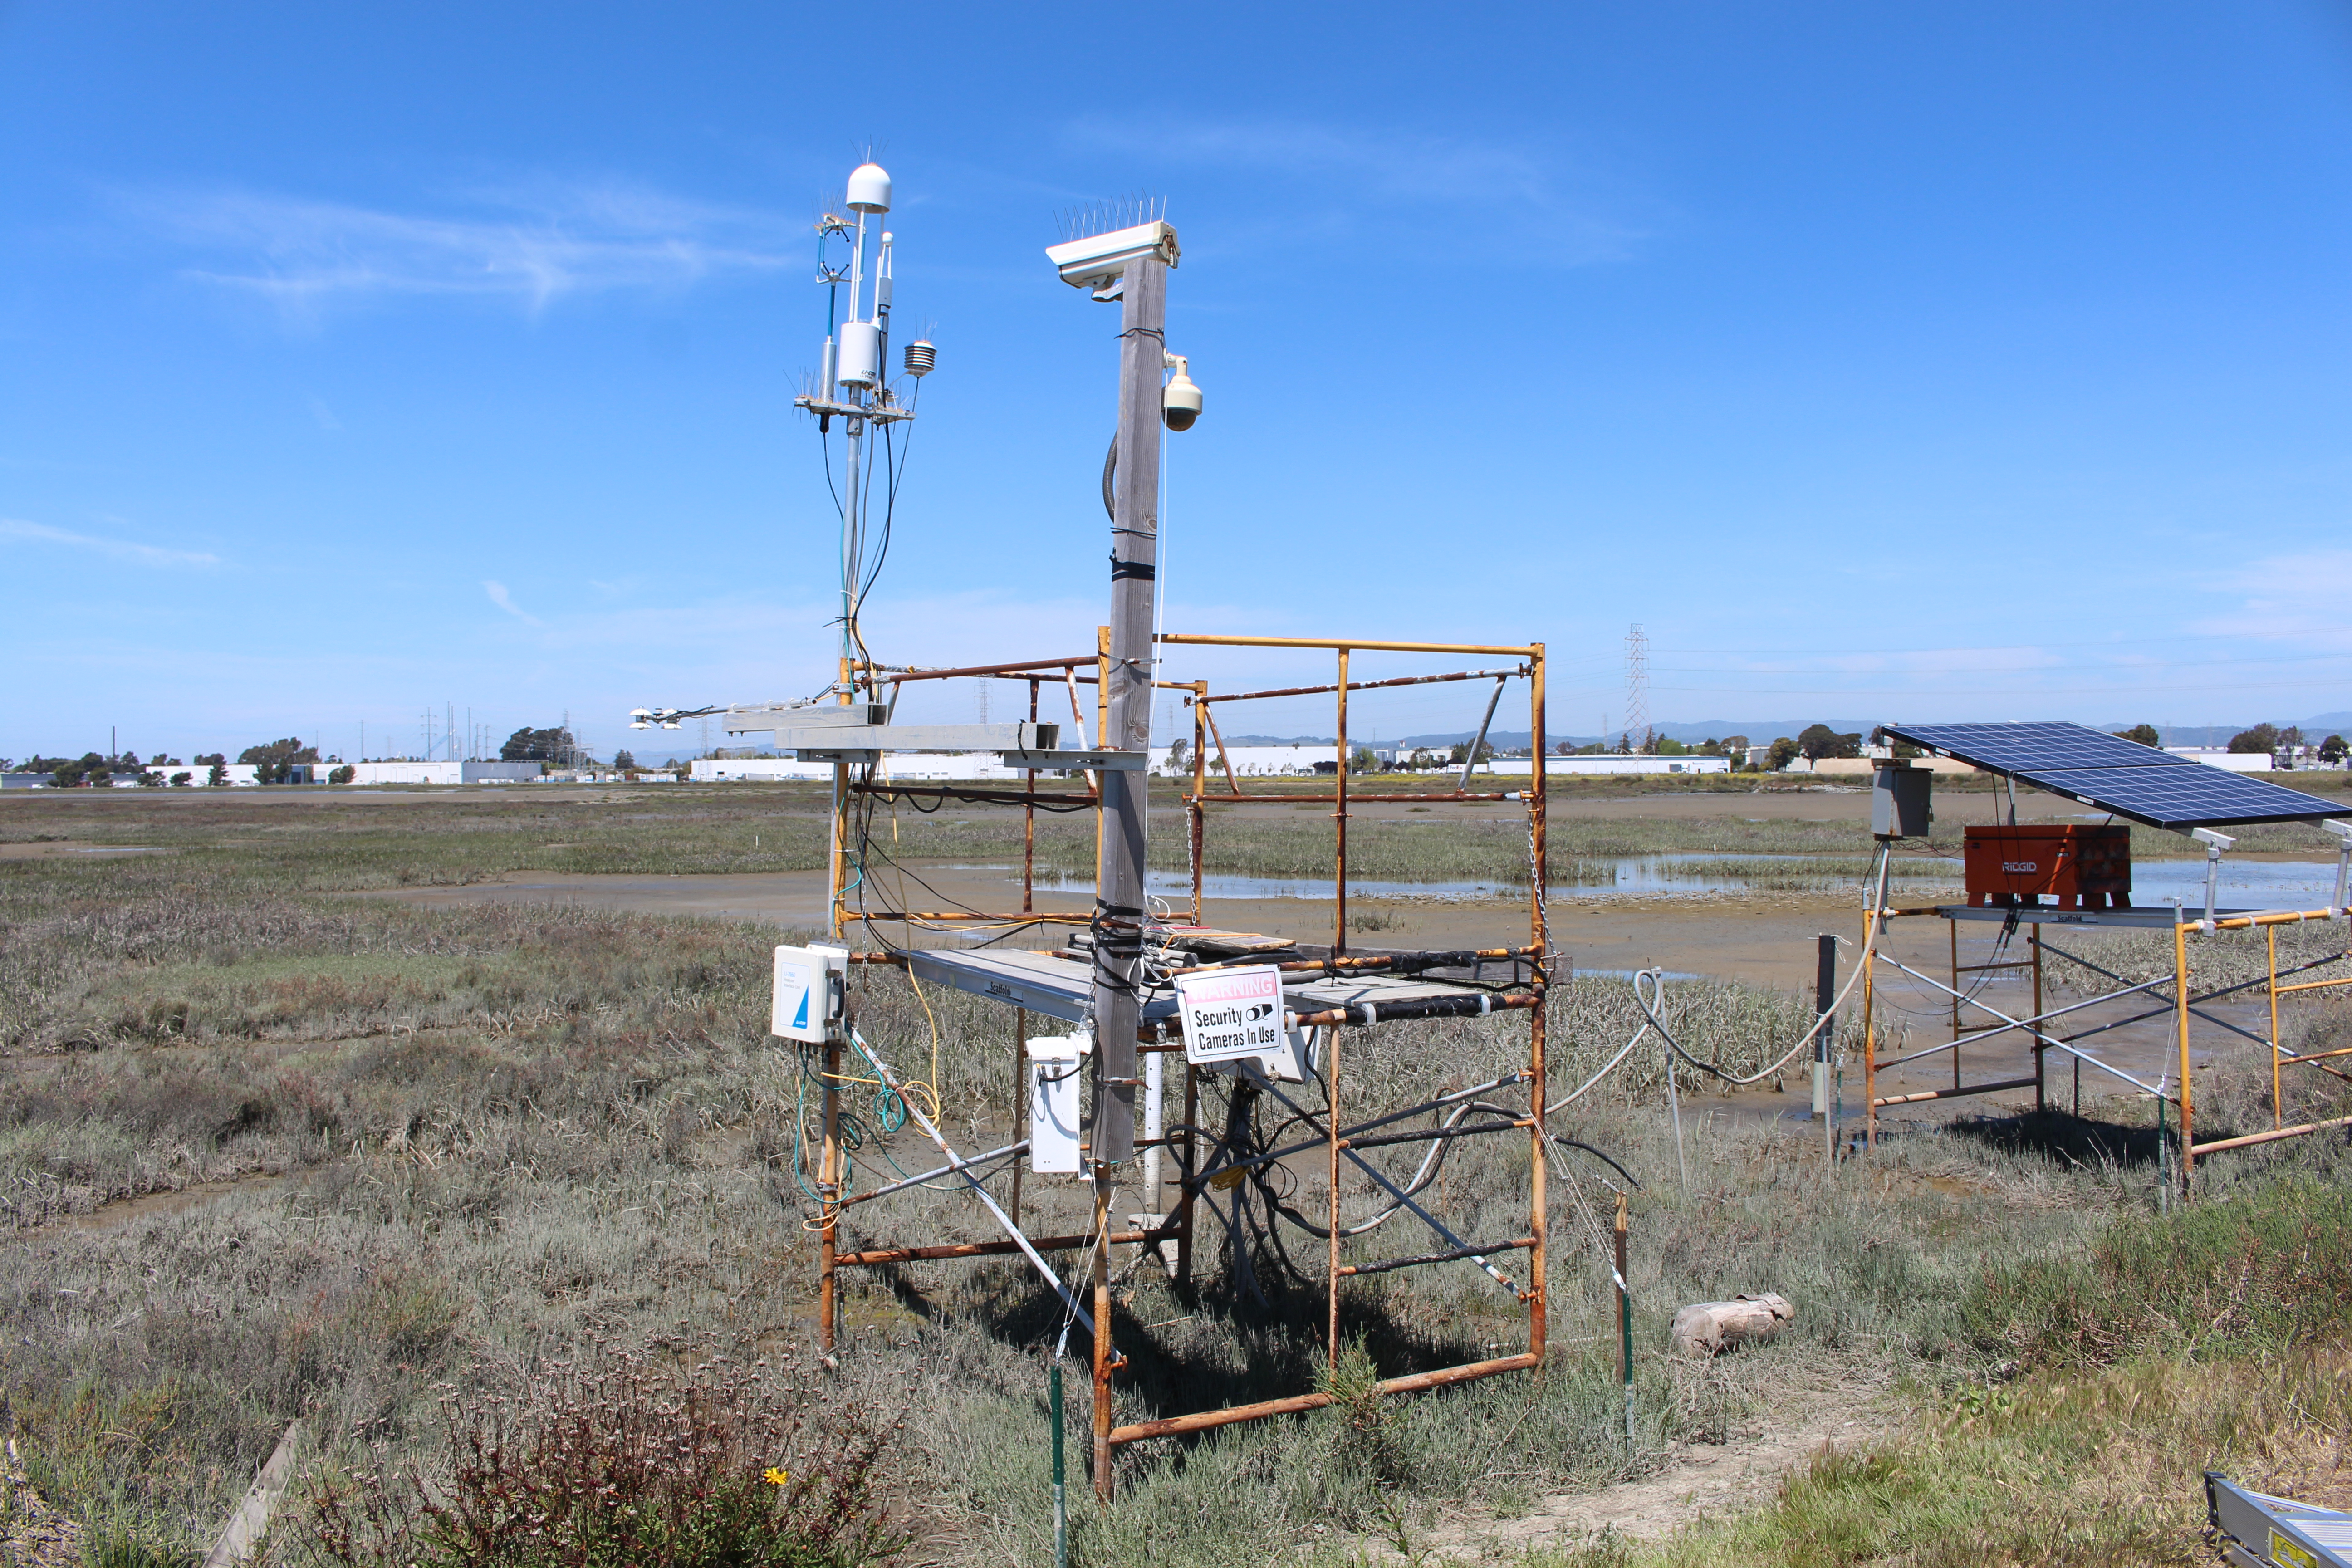 contraption in a wetland